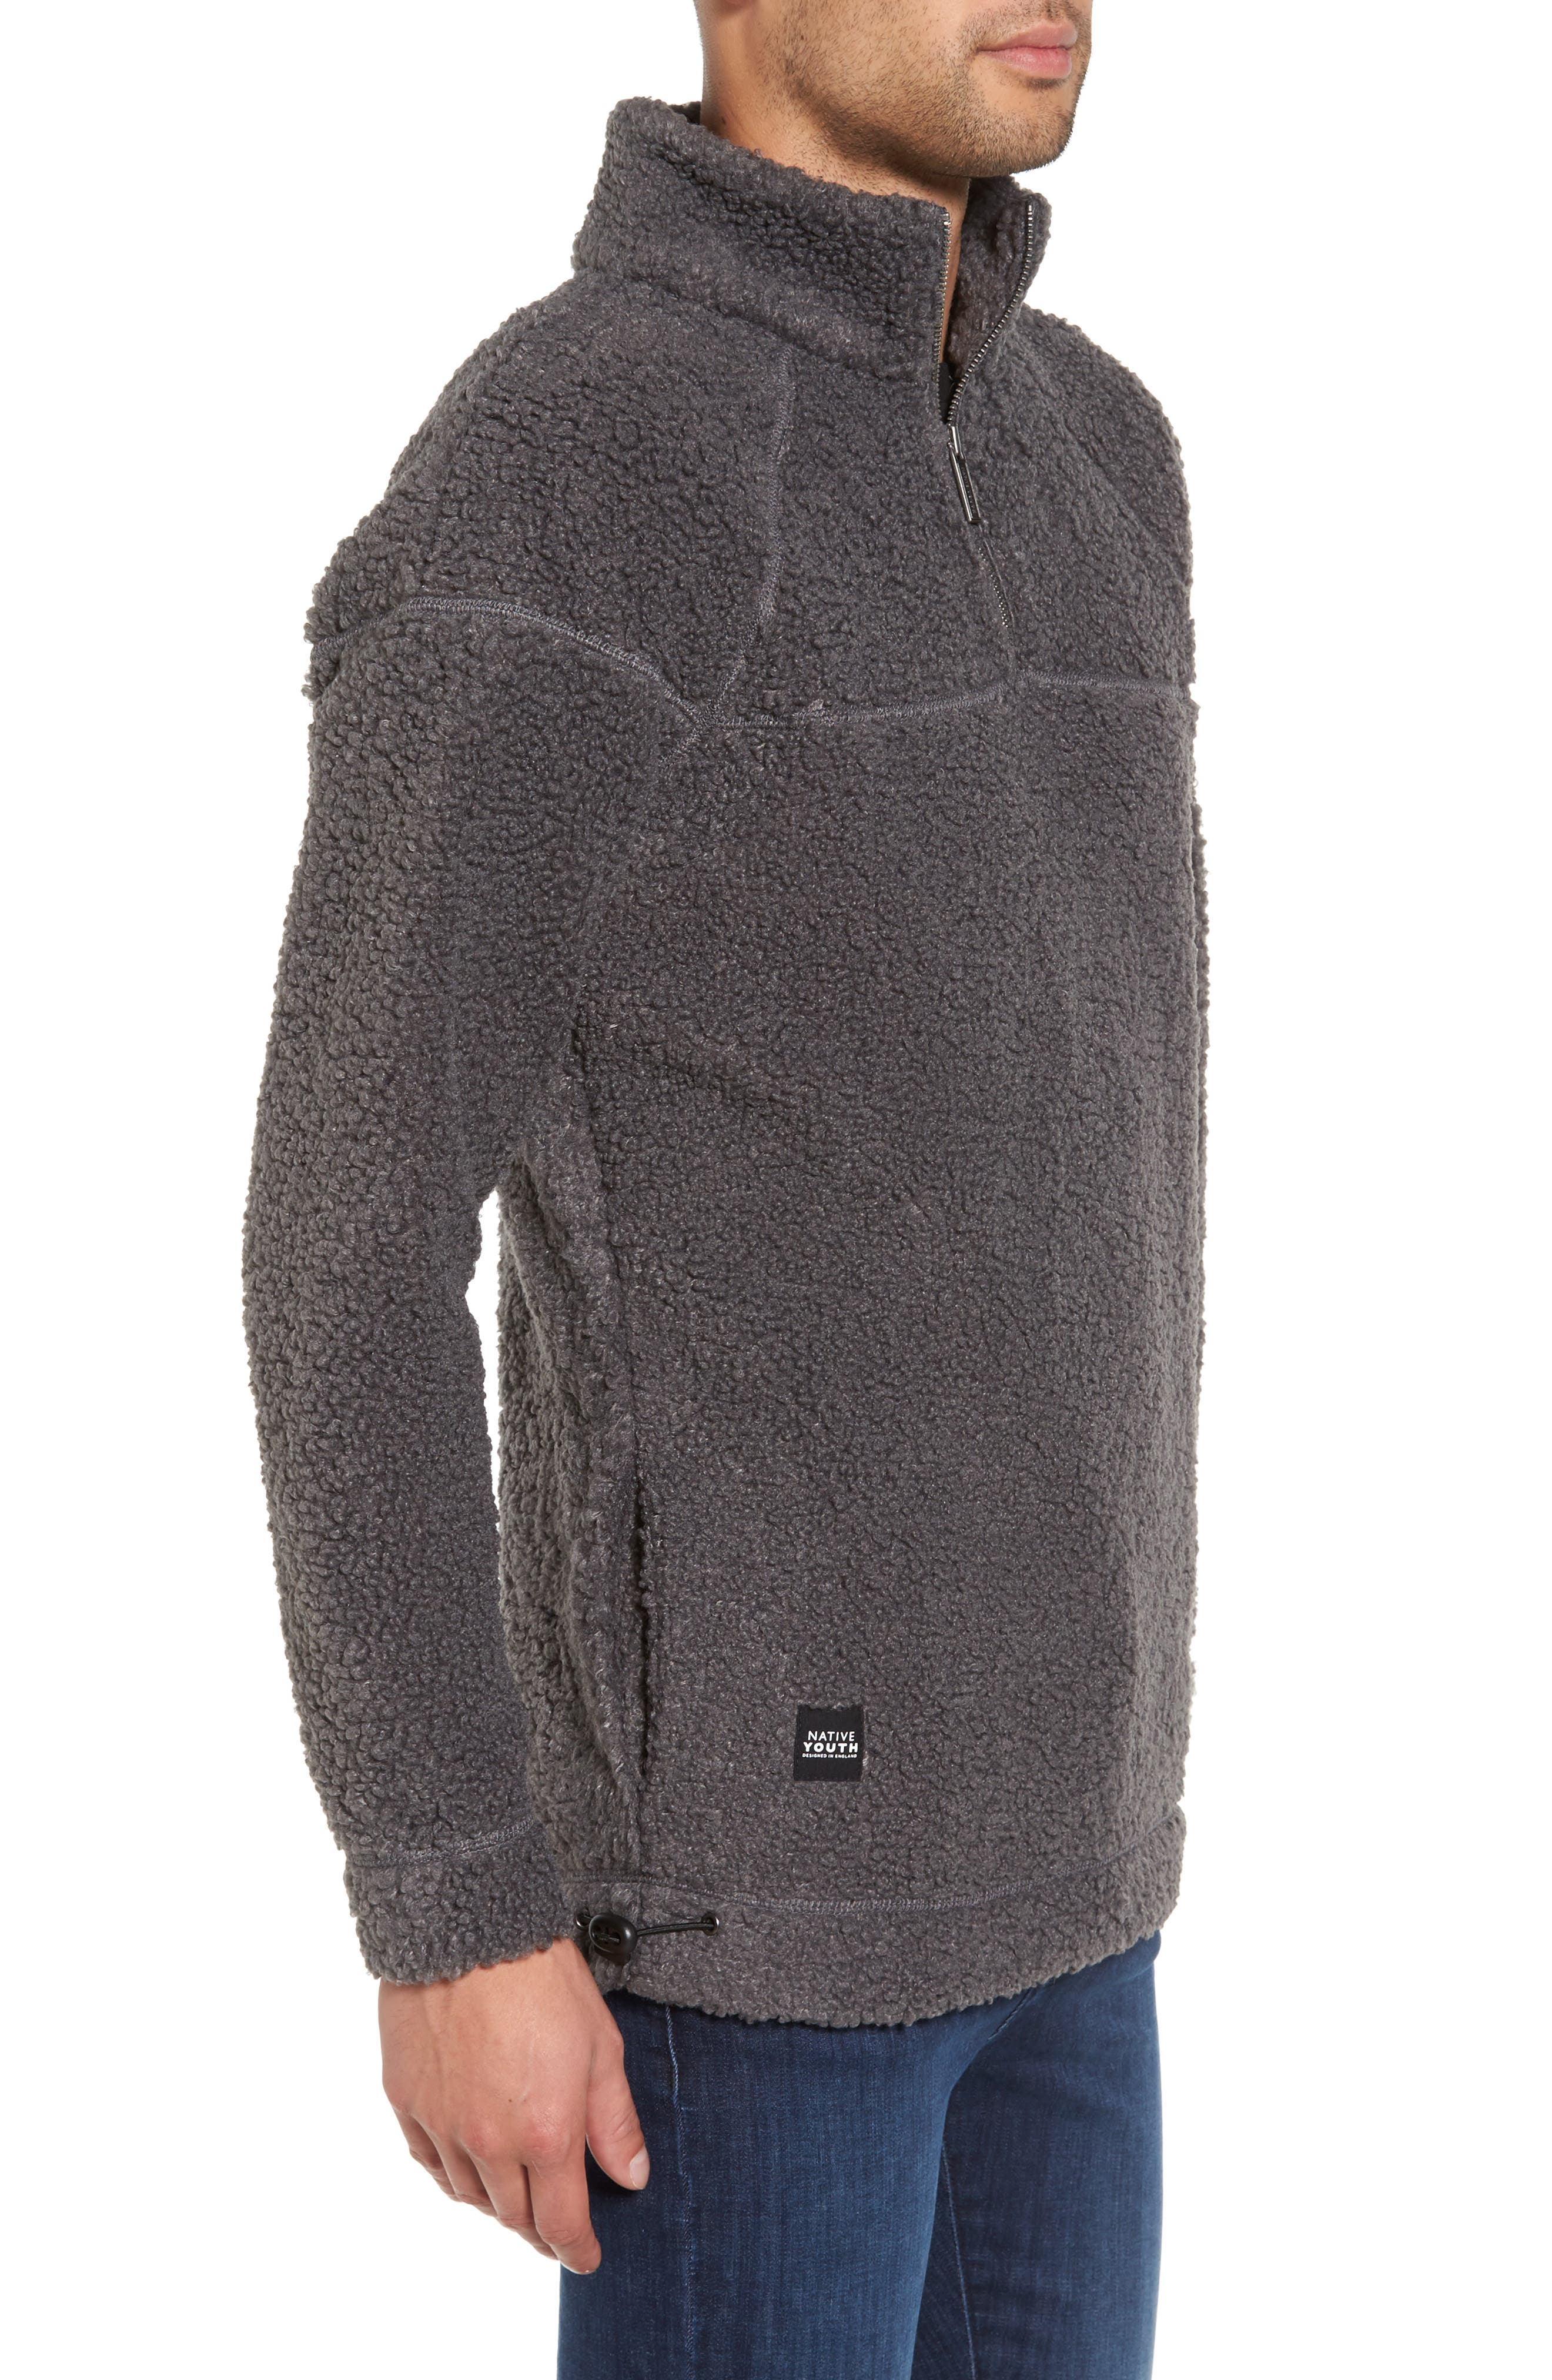 Alternate Image 3  - Native Youth Warlock Faux Shearling Quarter Zip Sweater